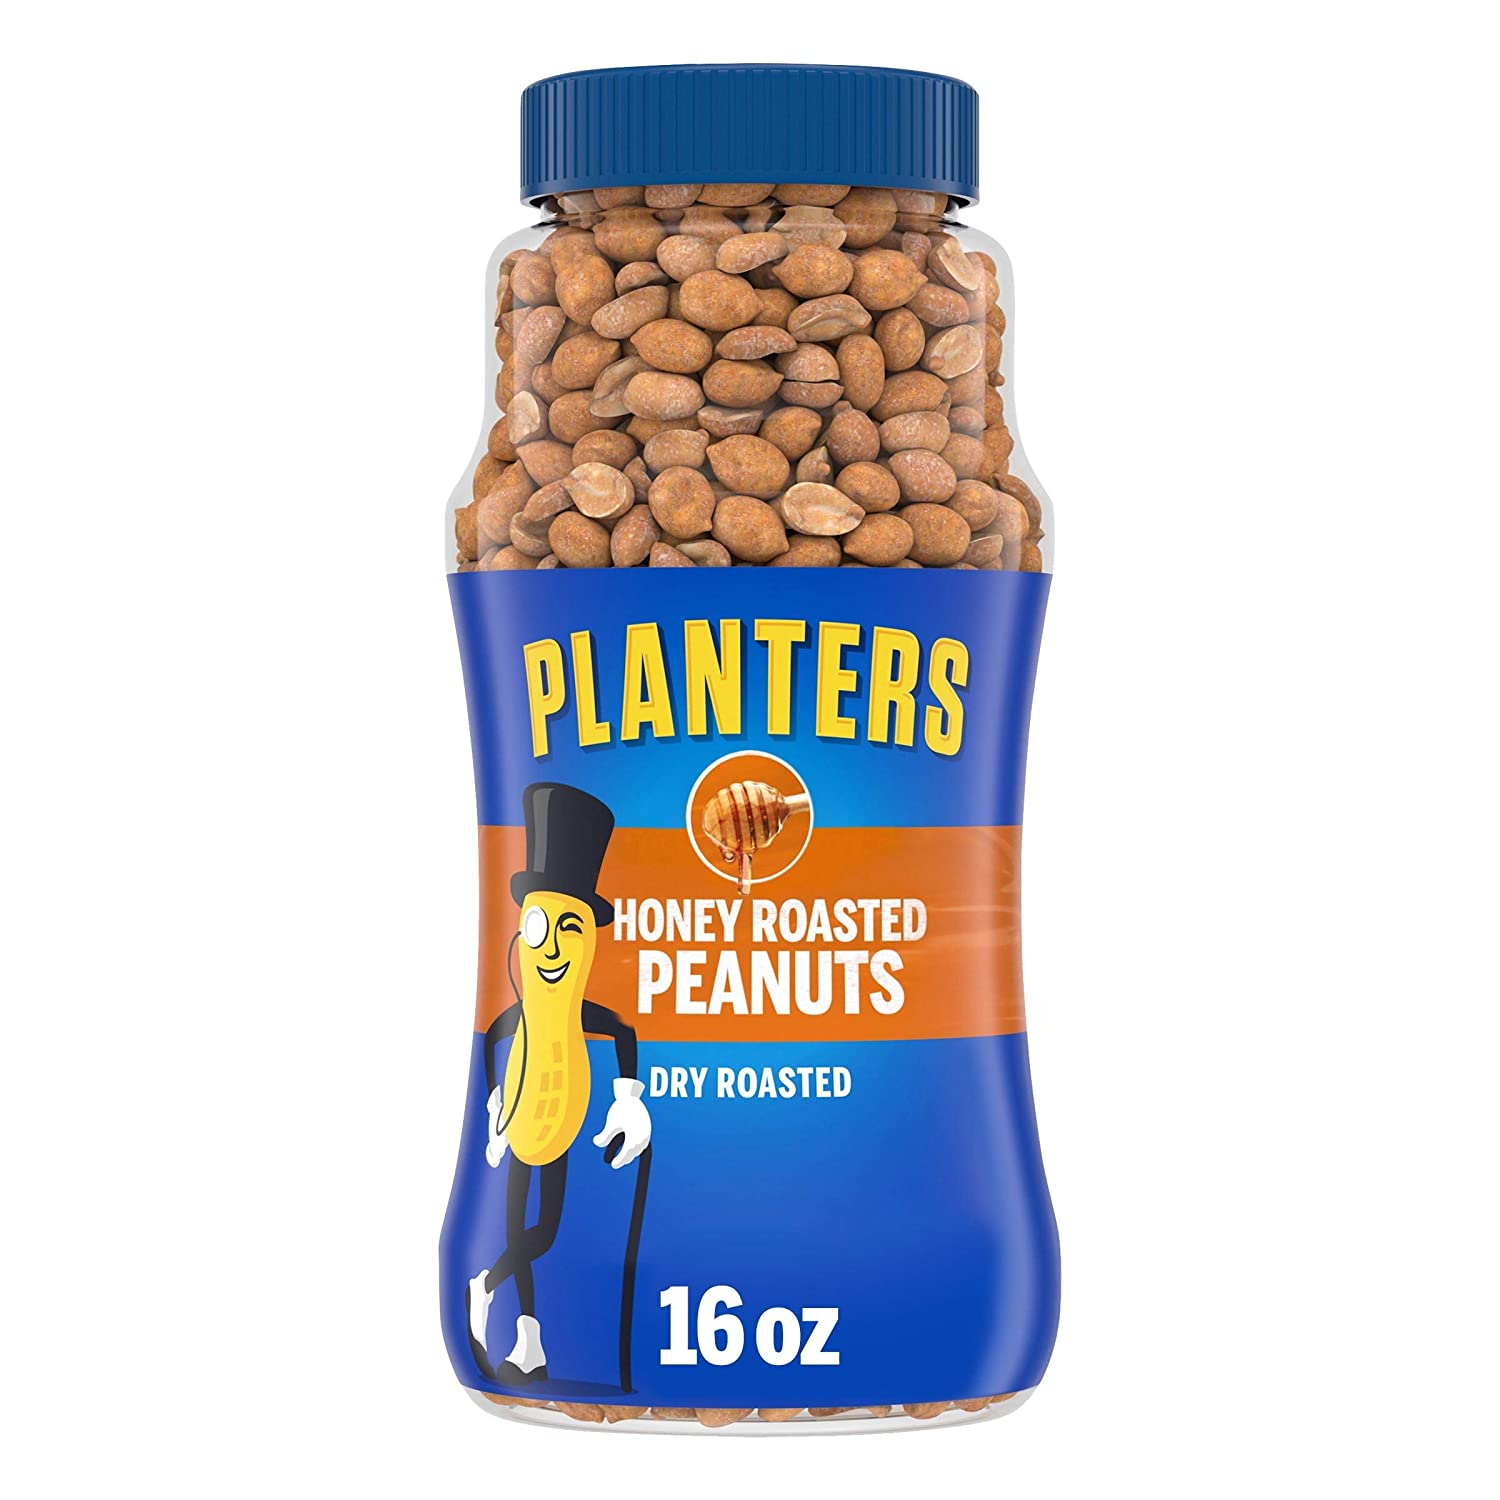 PLANTERS Honey Roasted Peanuts, 16 oz. Resealable Jar   Flavored Peanuts with a Sweet Honey Coating & Sea Salt   Wholesome Snacking   Kosher